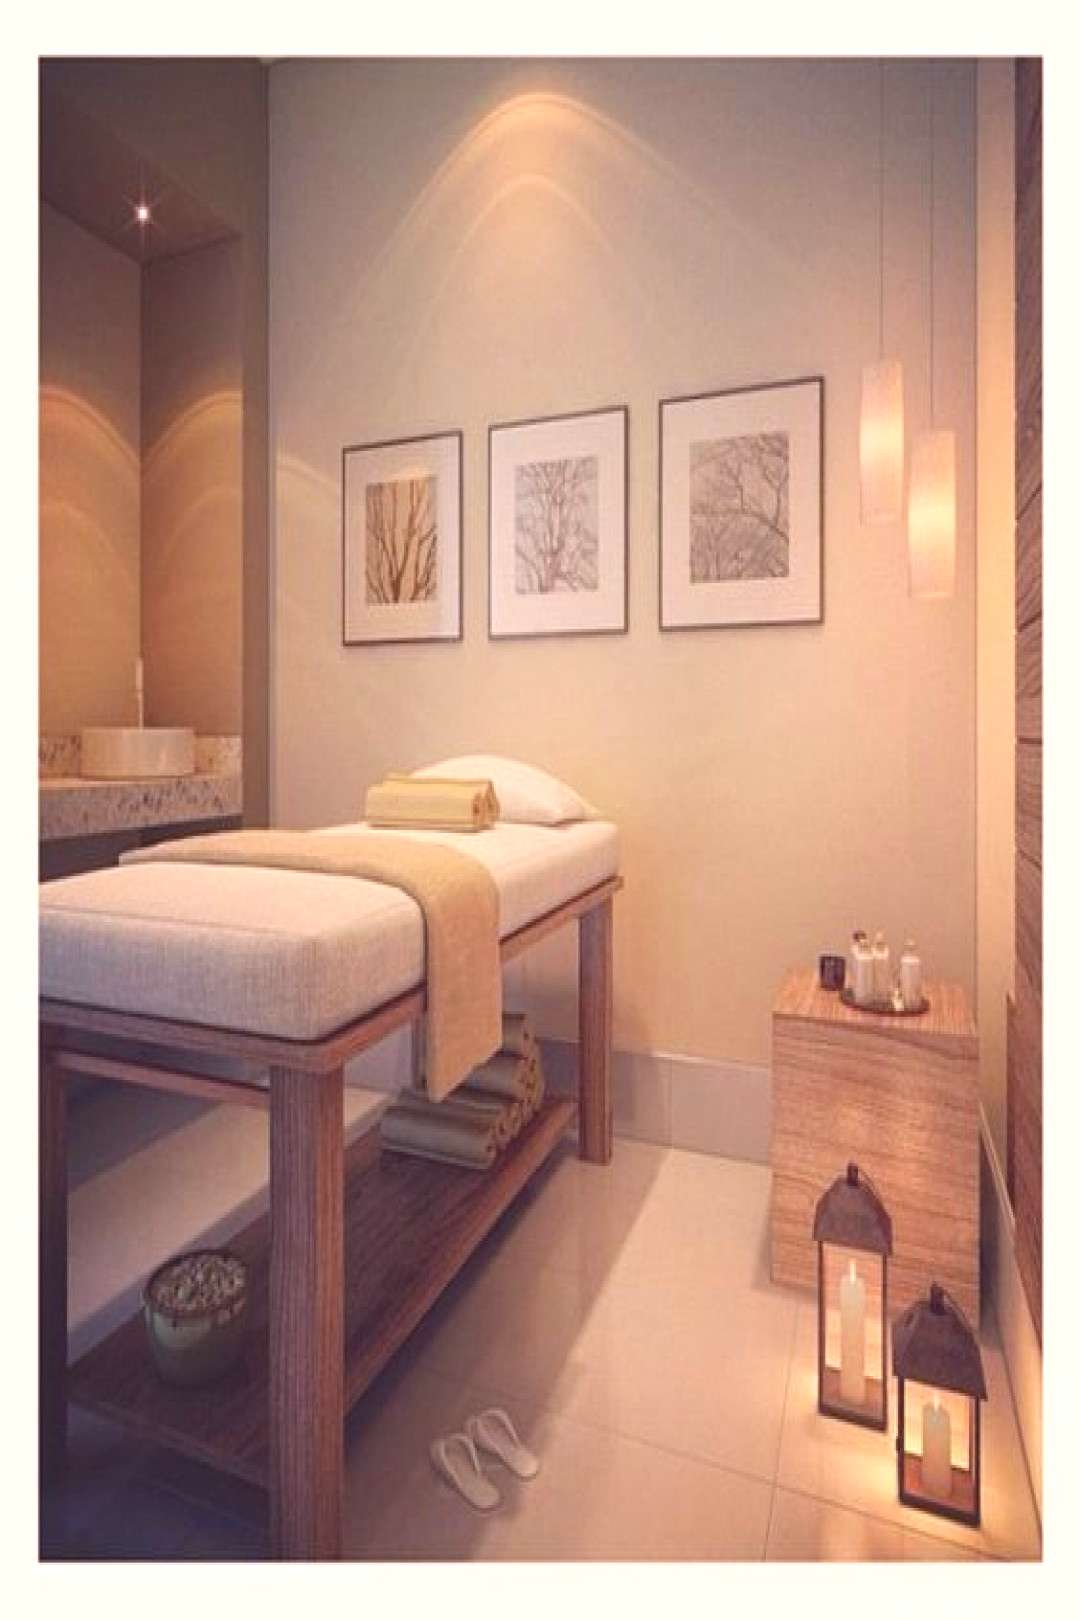 Chic But Welcoming Doctor's Clinic Design Ideas - Bored Art -  Chic But Welcoming Doctor's Clin